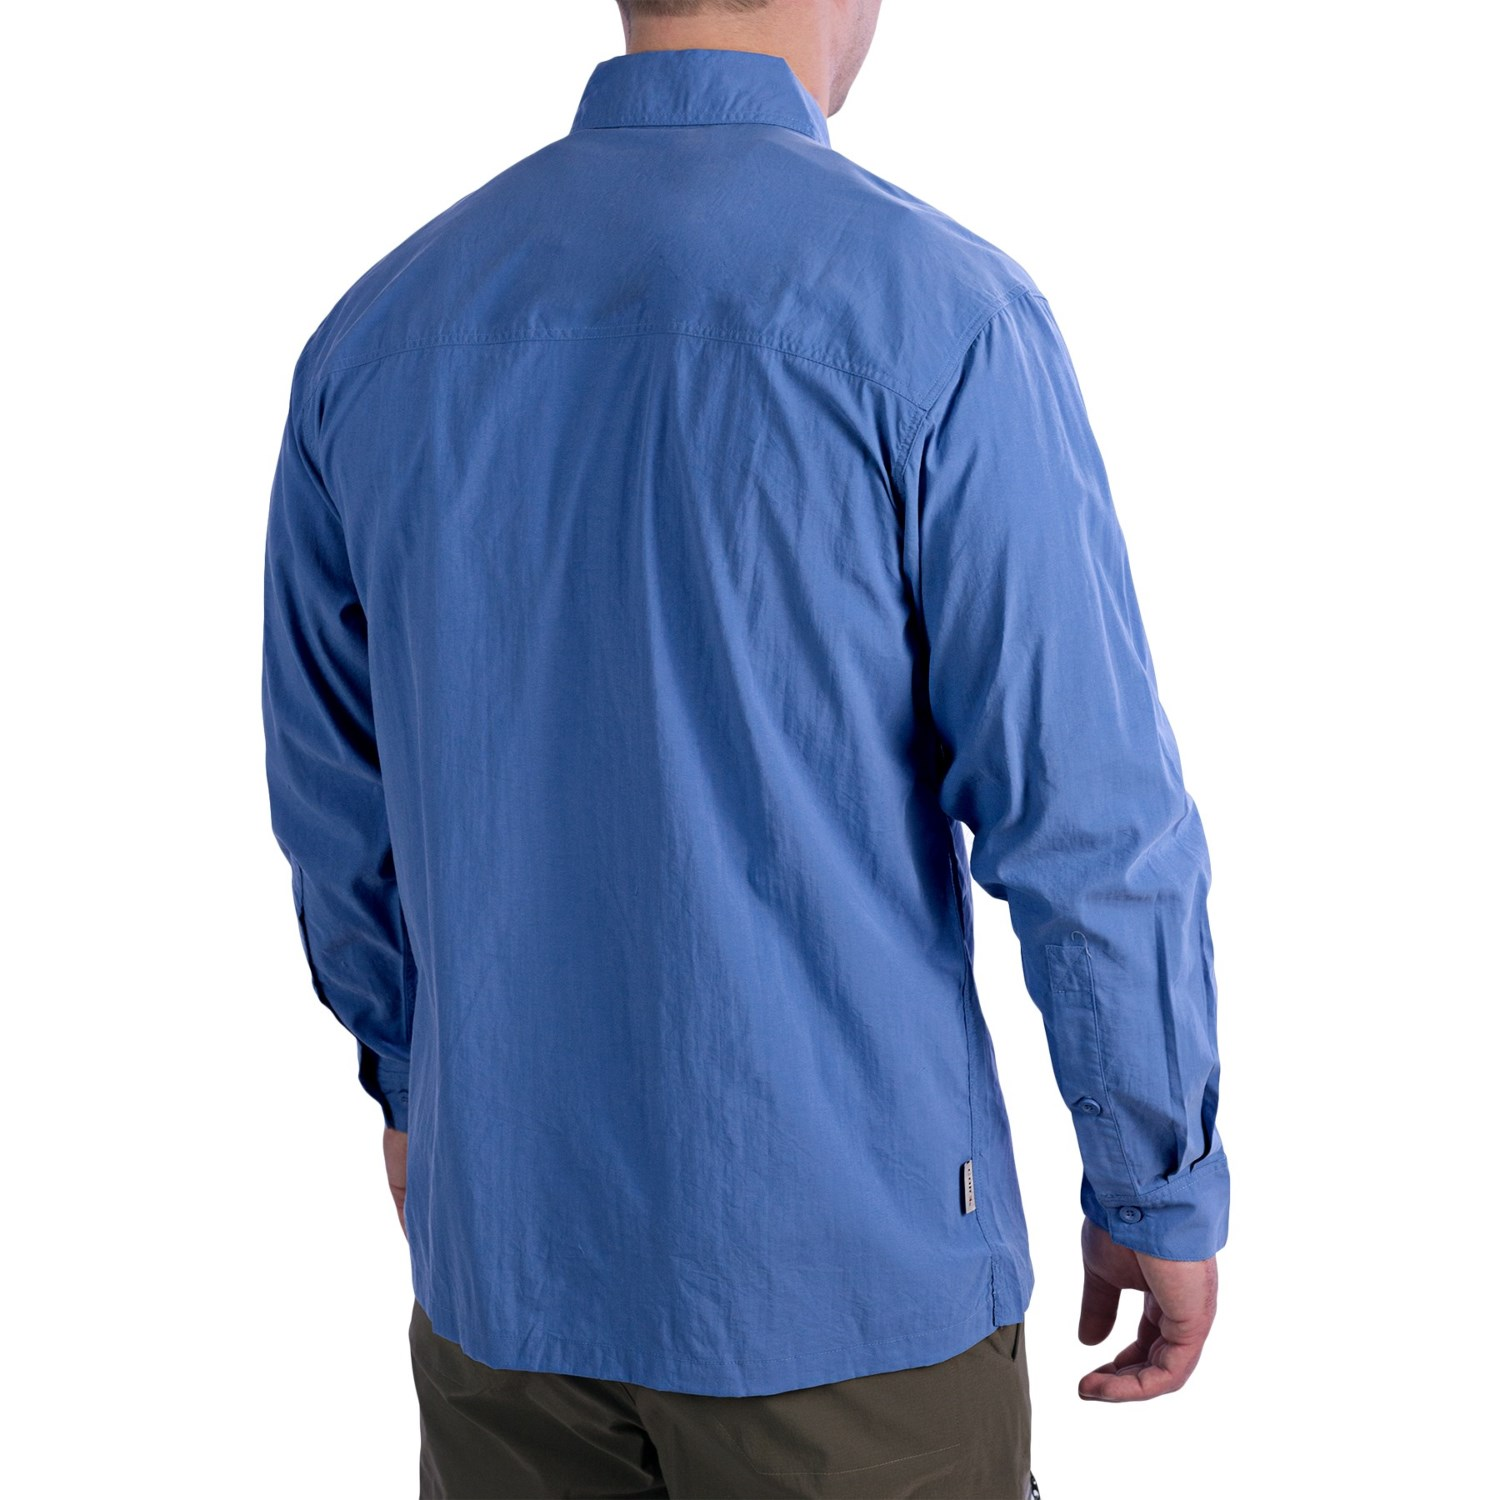 Simms stone cold fishing shirt for men 7030r save 37 for Fishing shirts for men